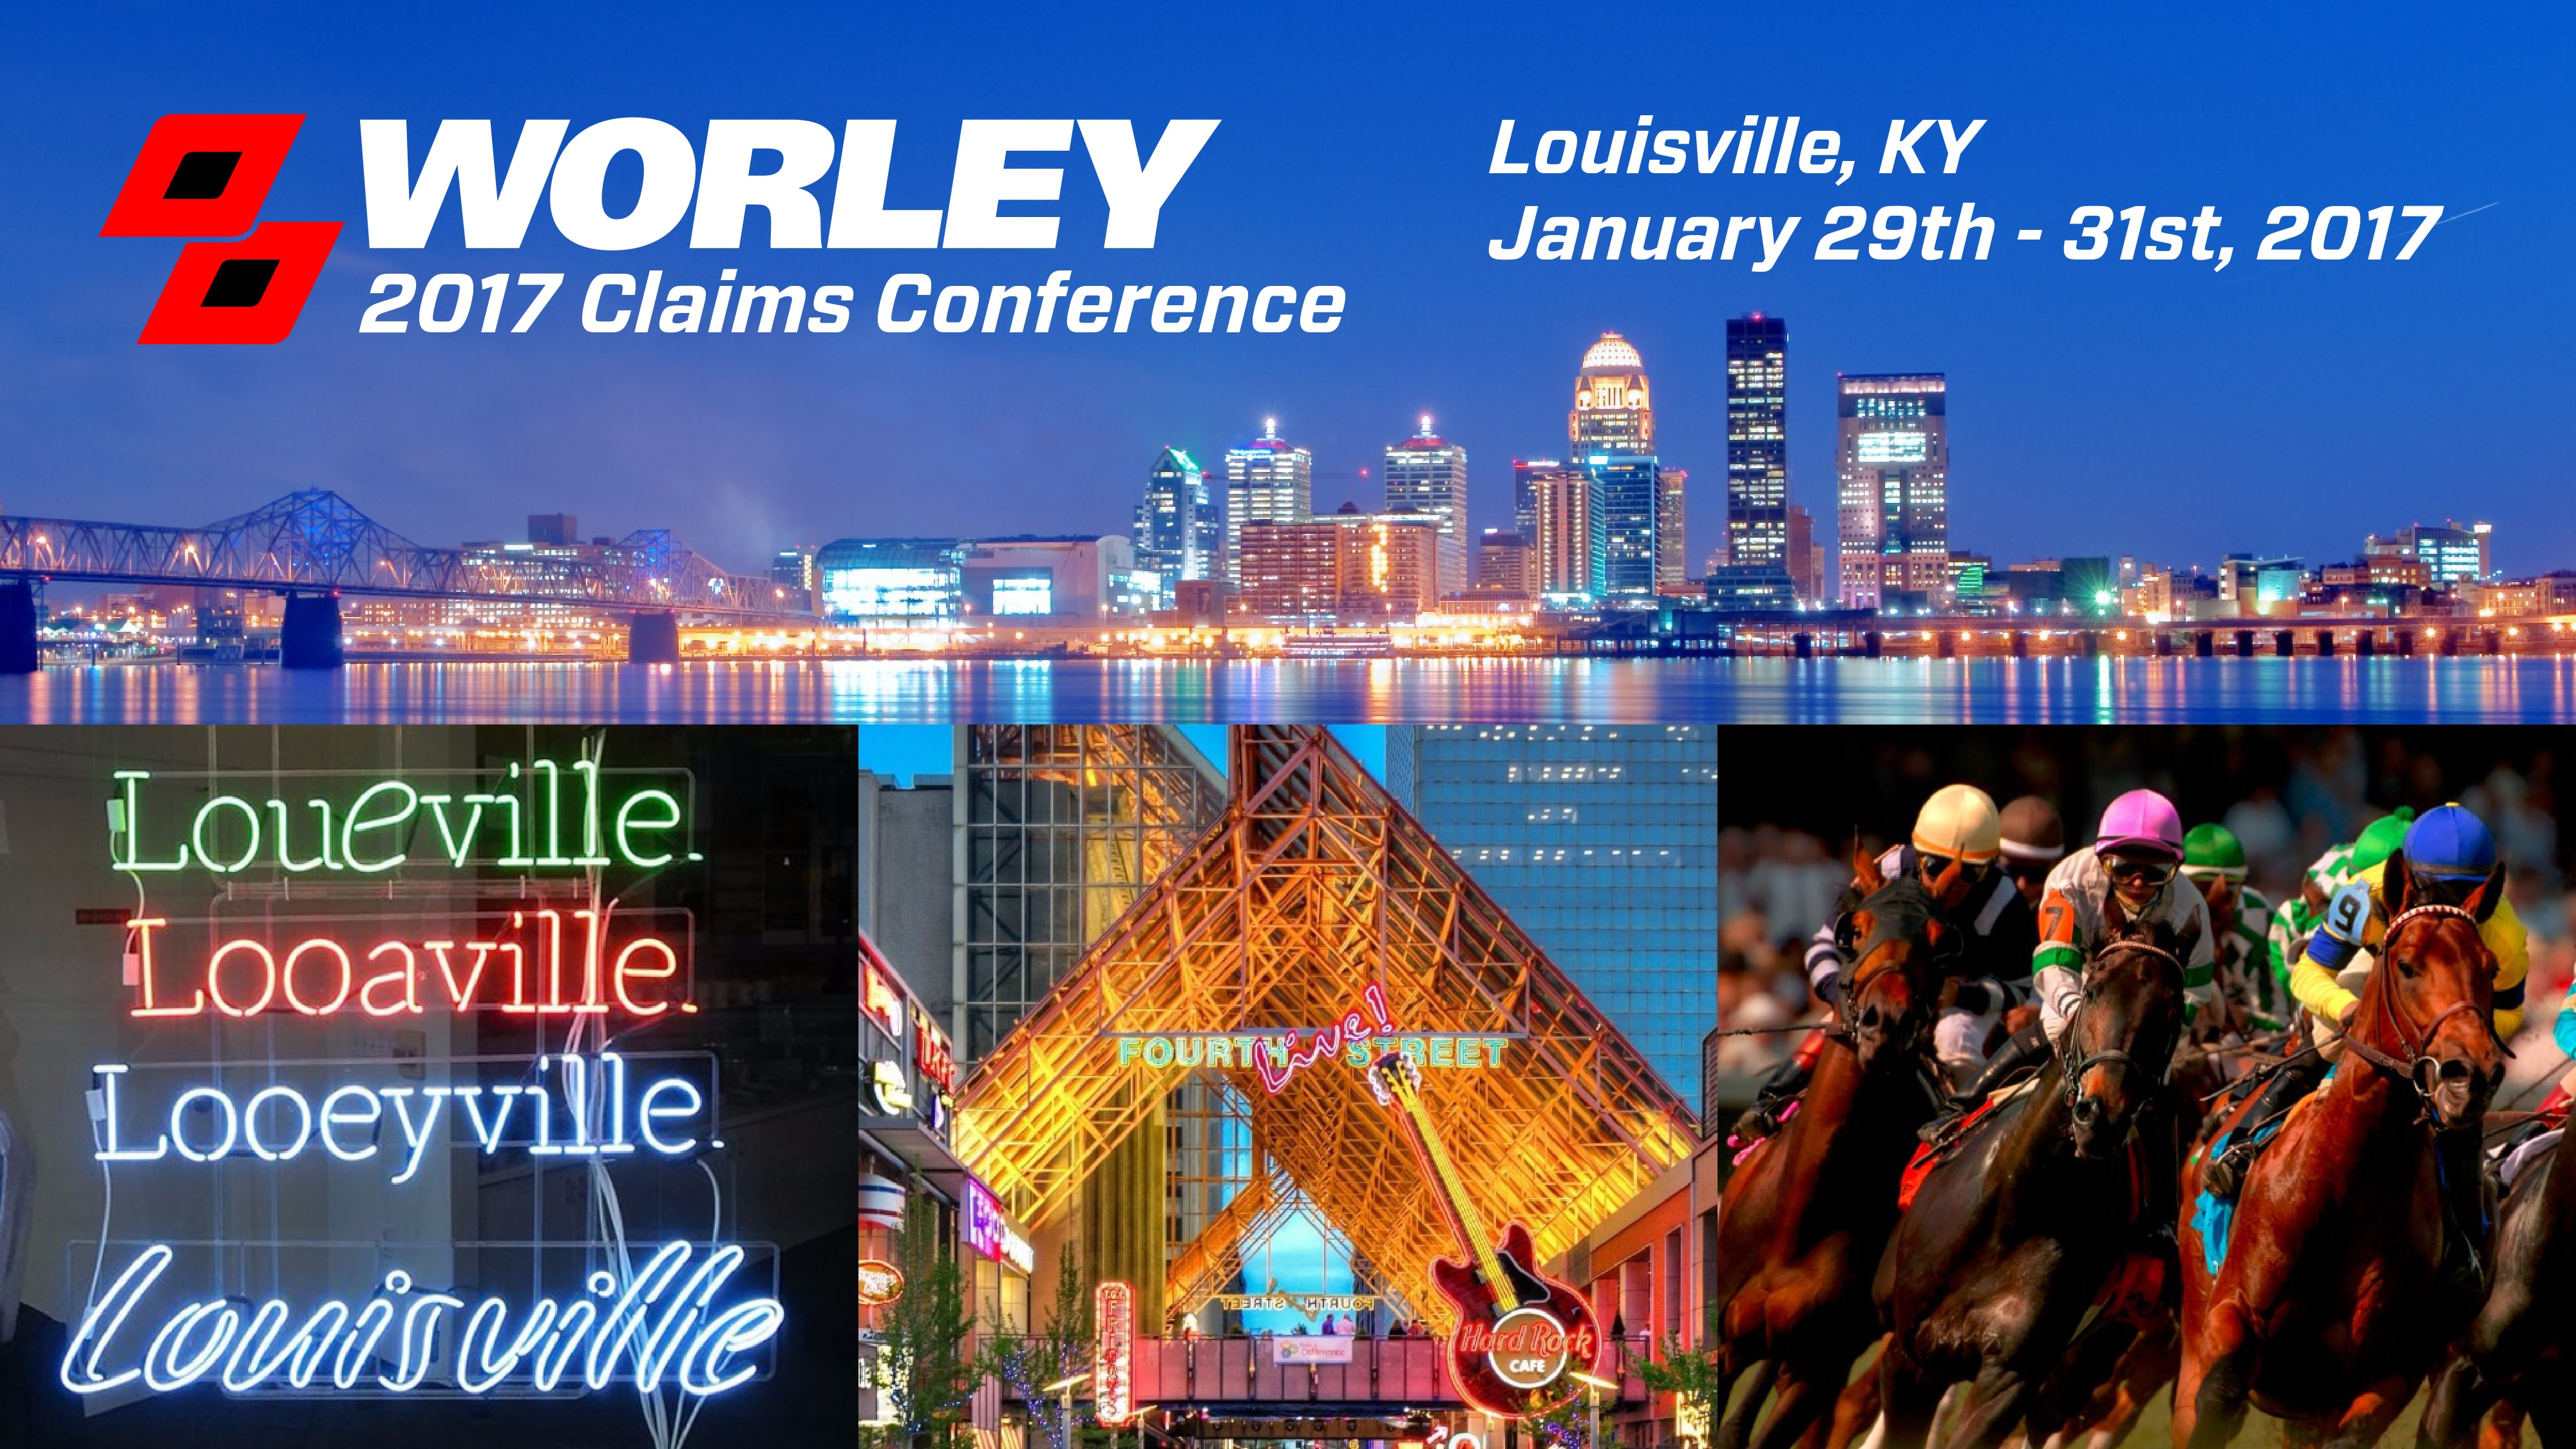 2017 Worley Claims Conference